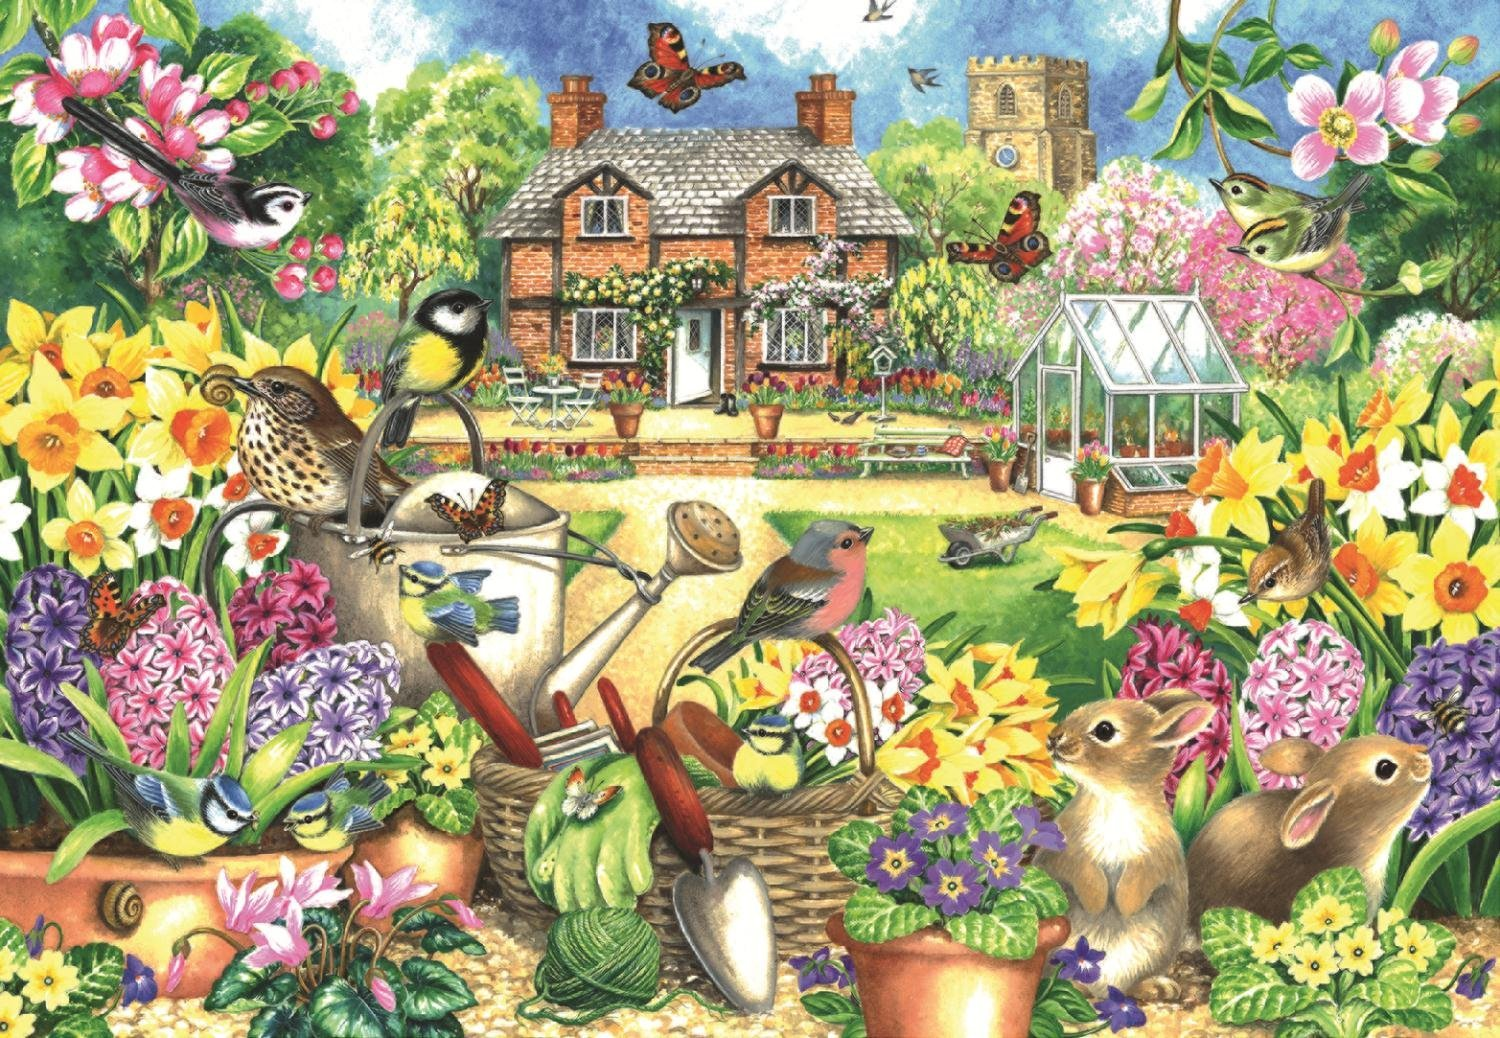 falcon-claire-comerford-spring-garden-1000-teile-puzzle-jumbo-11106